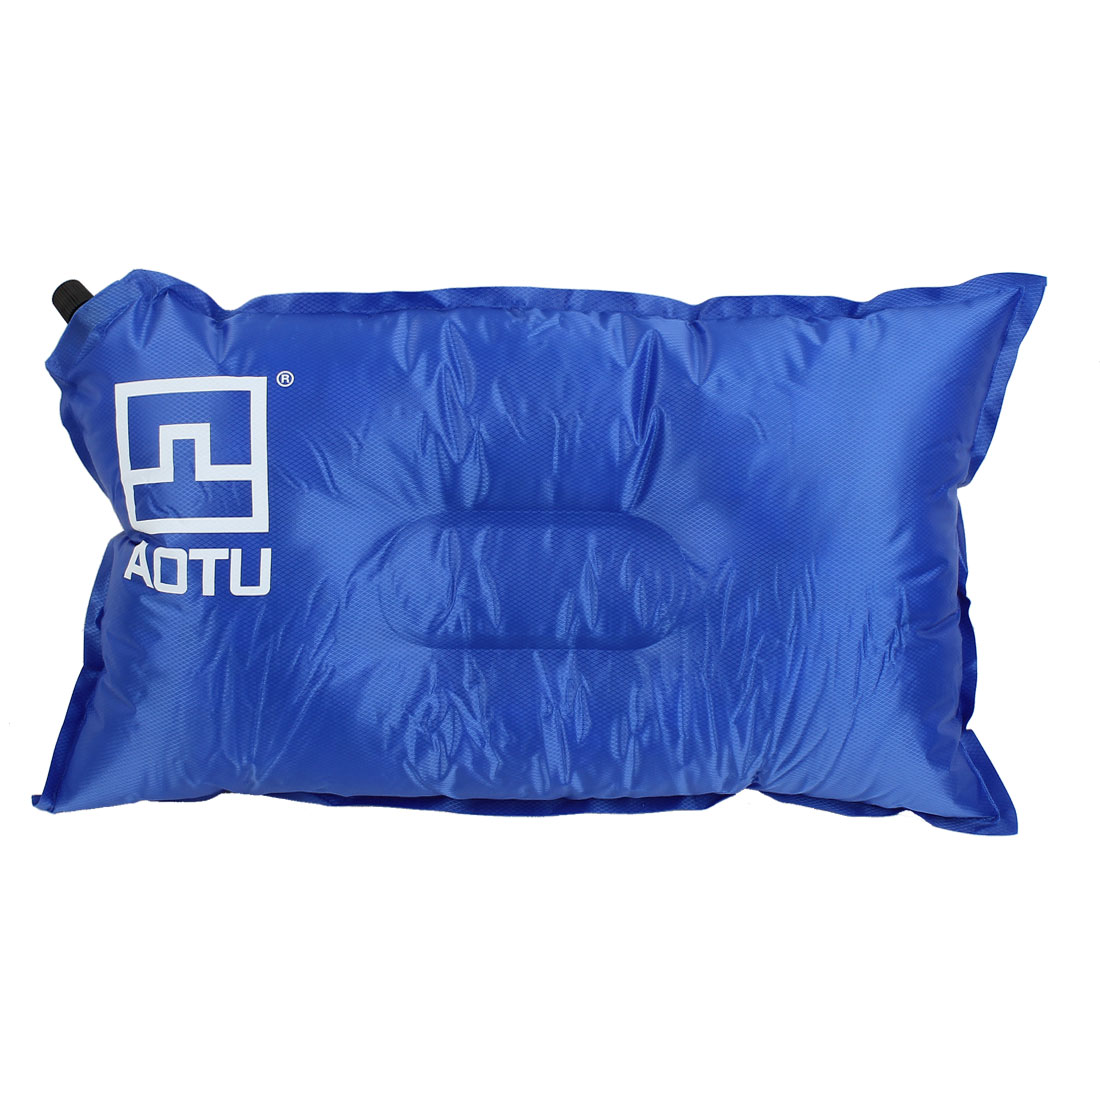 Outdoor Camping Travel Beach Automatic Inflatable Pillow Cushion Mattress Blue